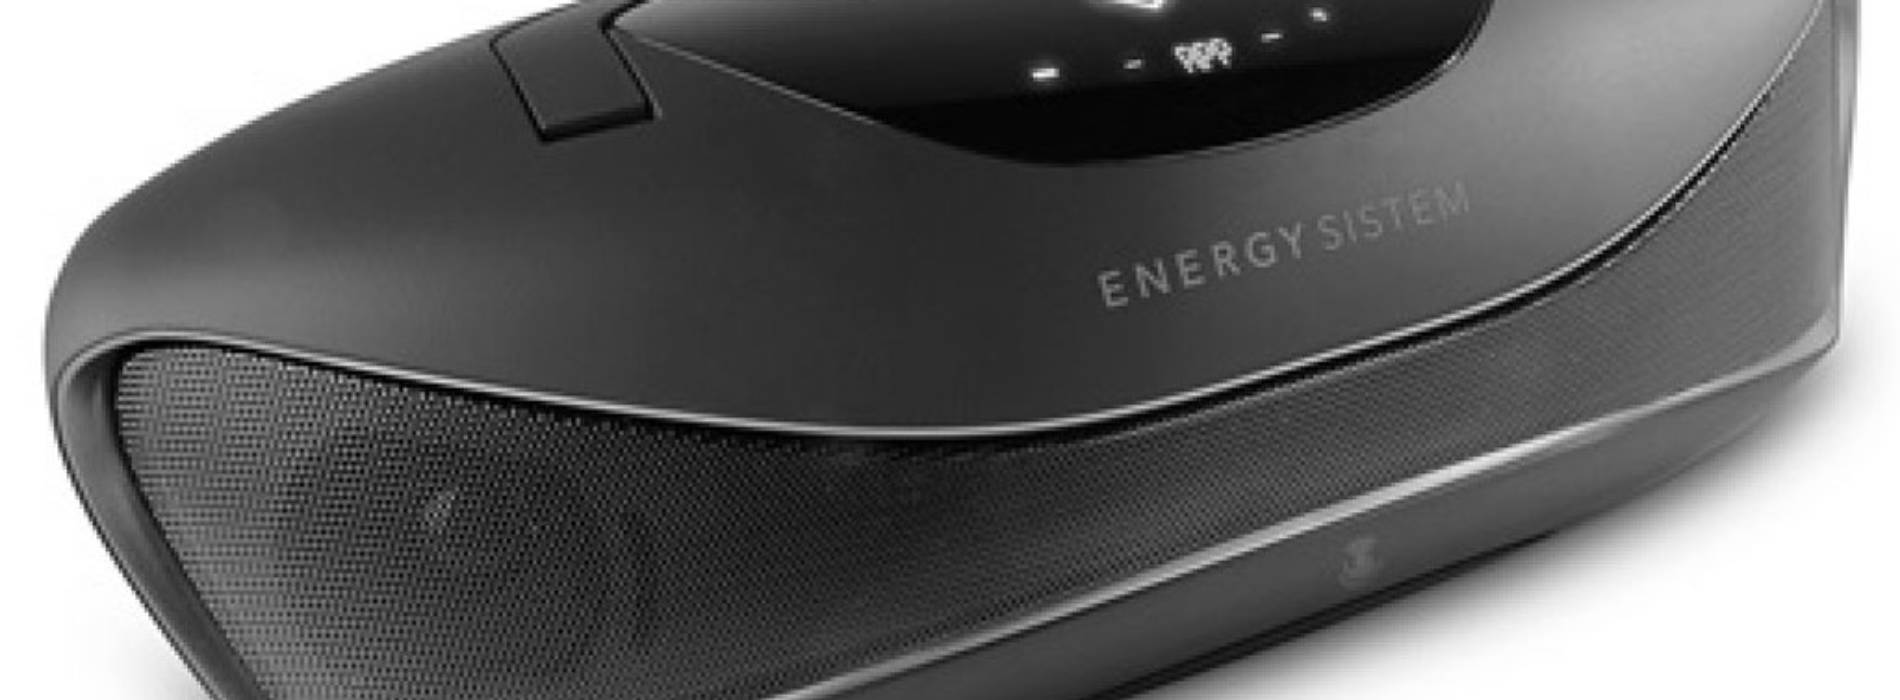 Concurso: Energy Sistem Multiroom Portable WiFi